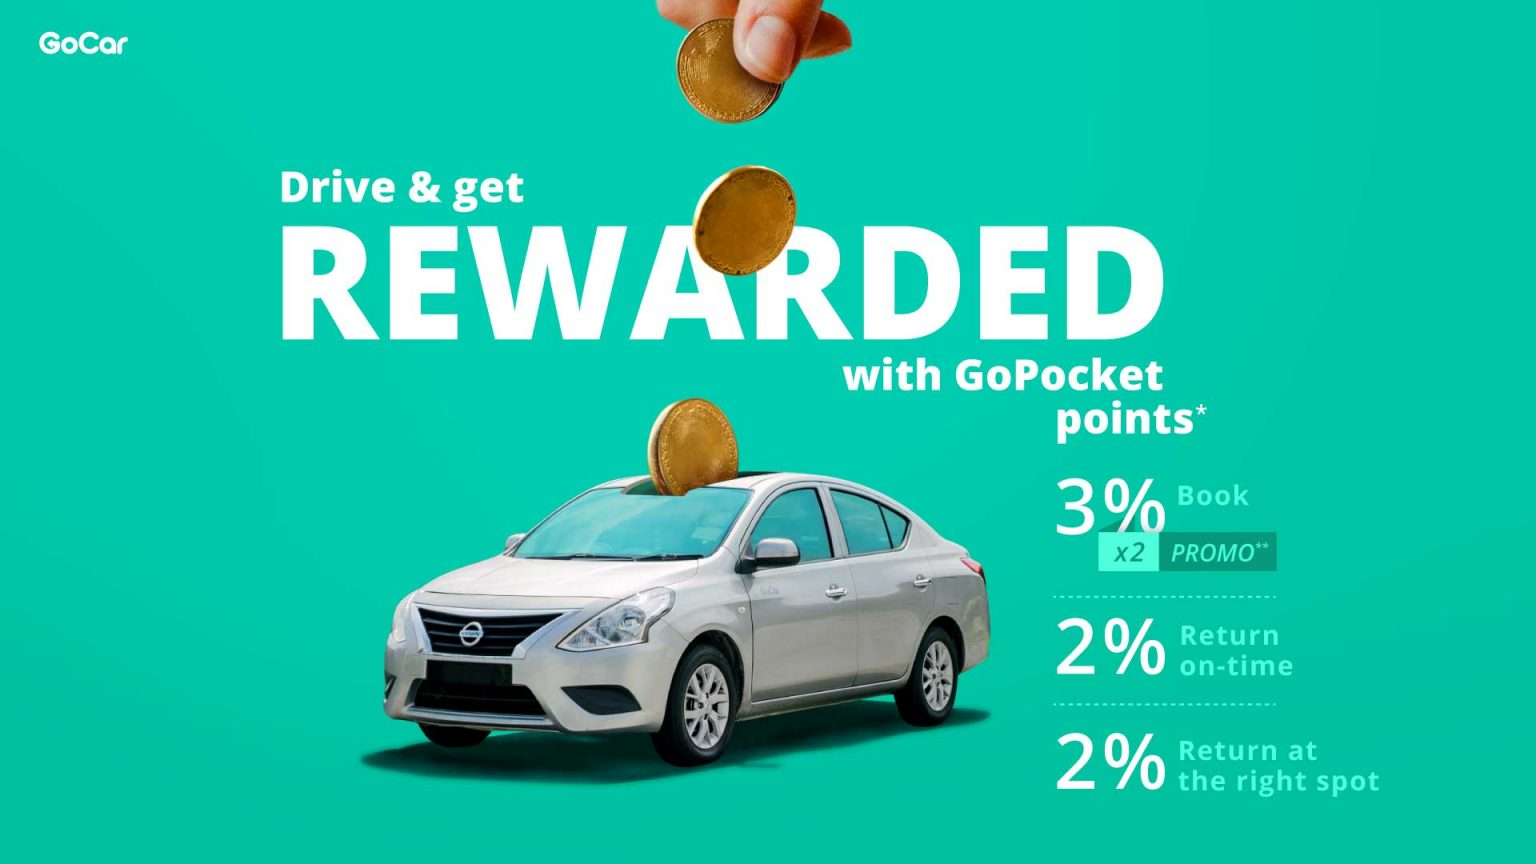 GoCar drive and get rewarded